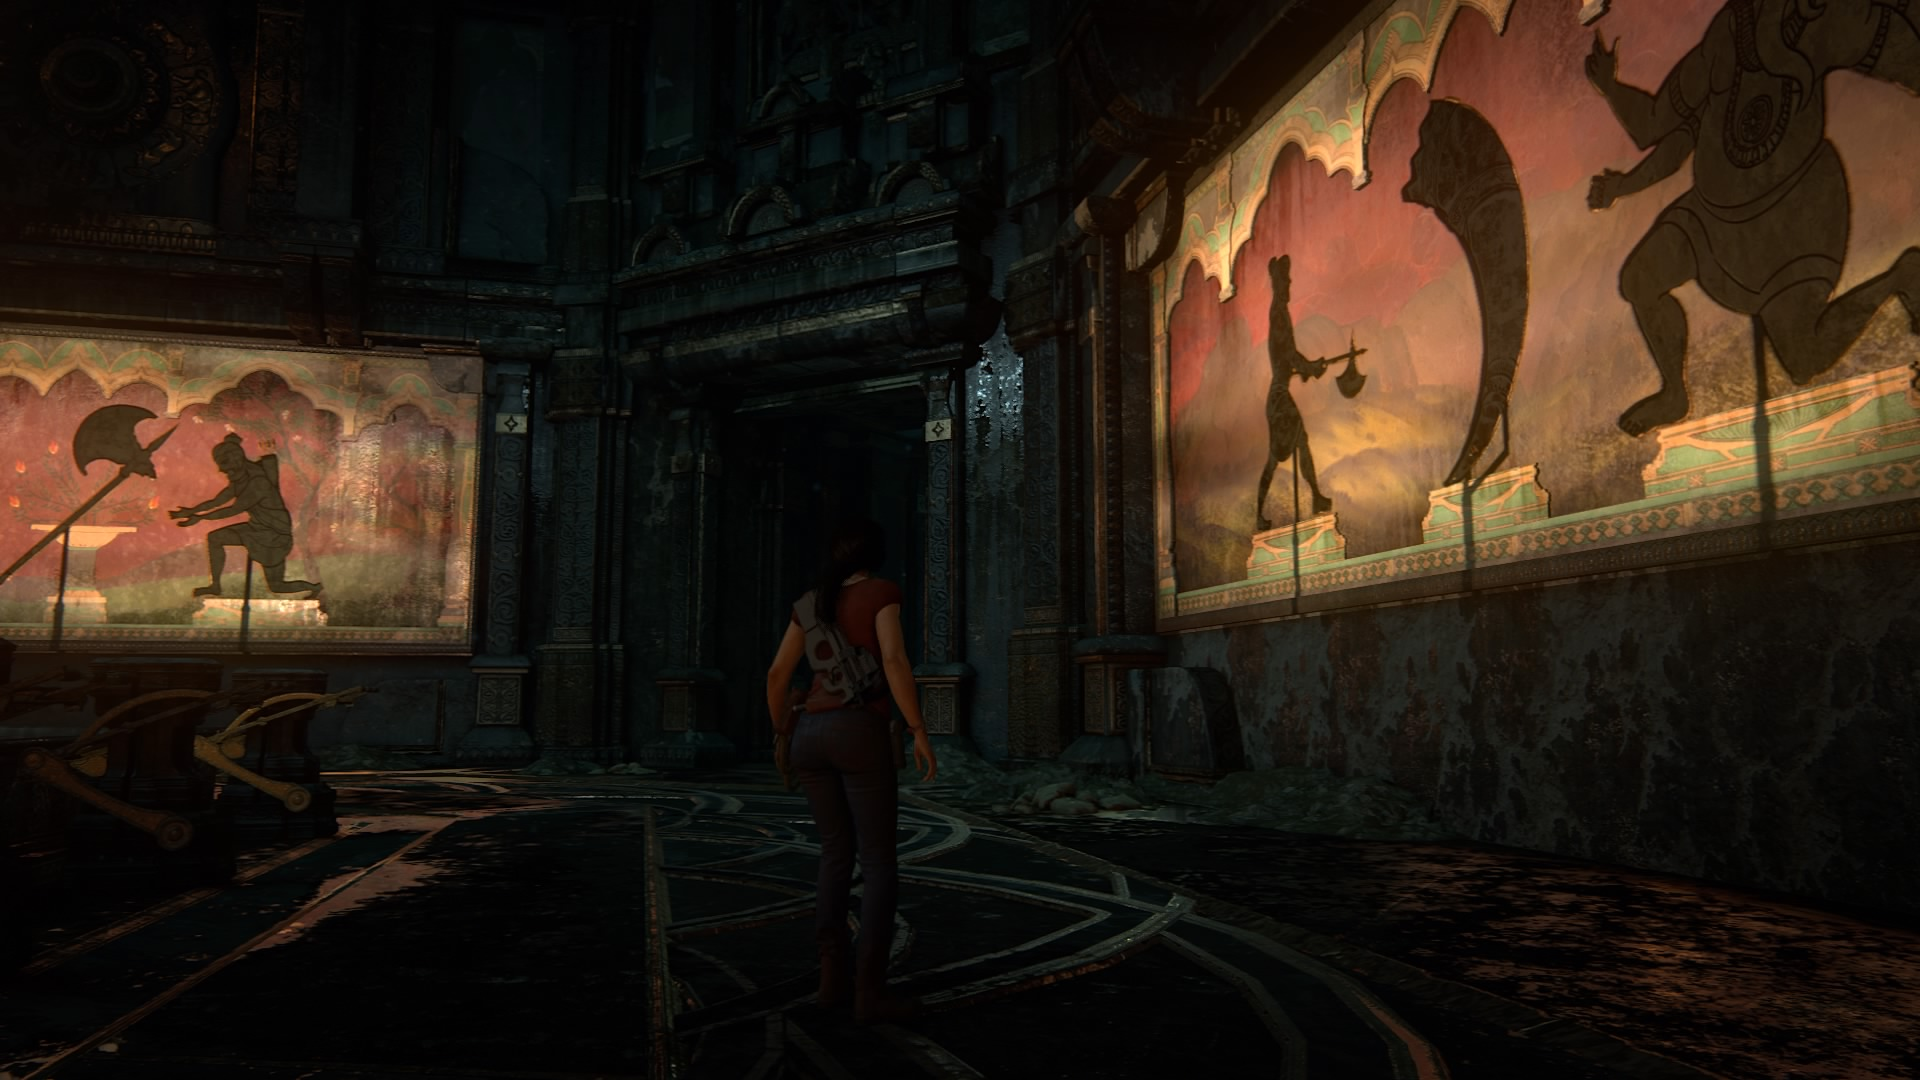 Uncharted The Lost Legacy Extra Life Ps4uncharted Reg 3 To Complement This New Development Puzzles In Stand Out From Any Of Previous Ones By Telling A Far More Vivid Story